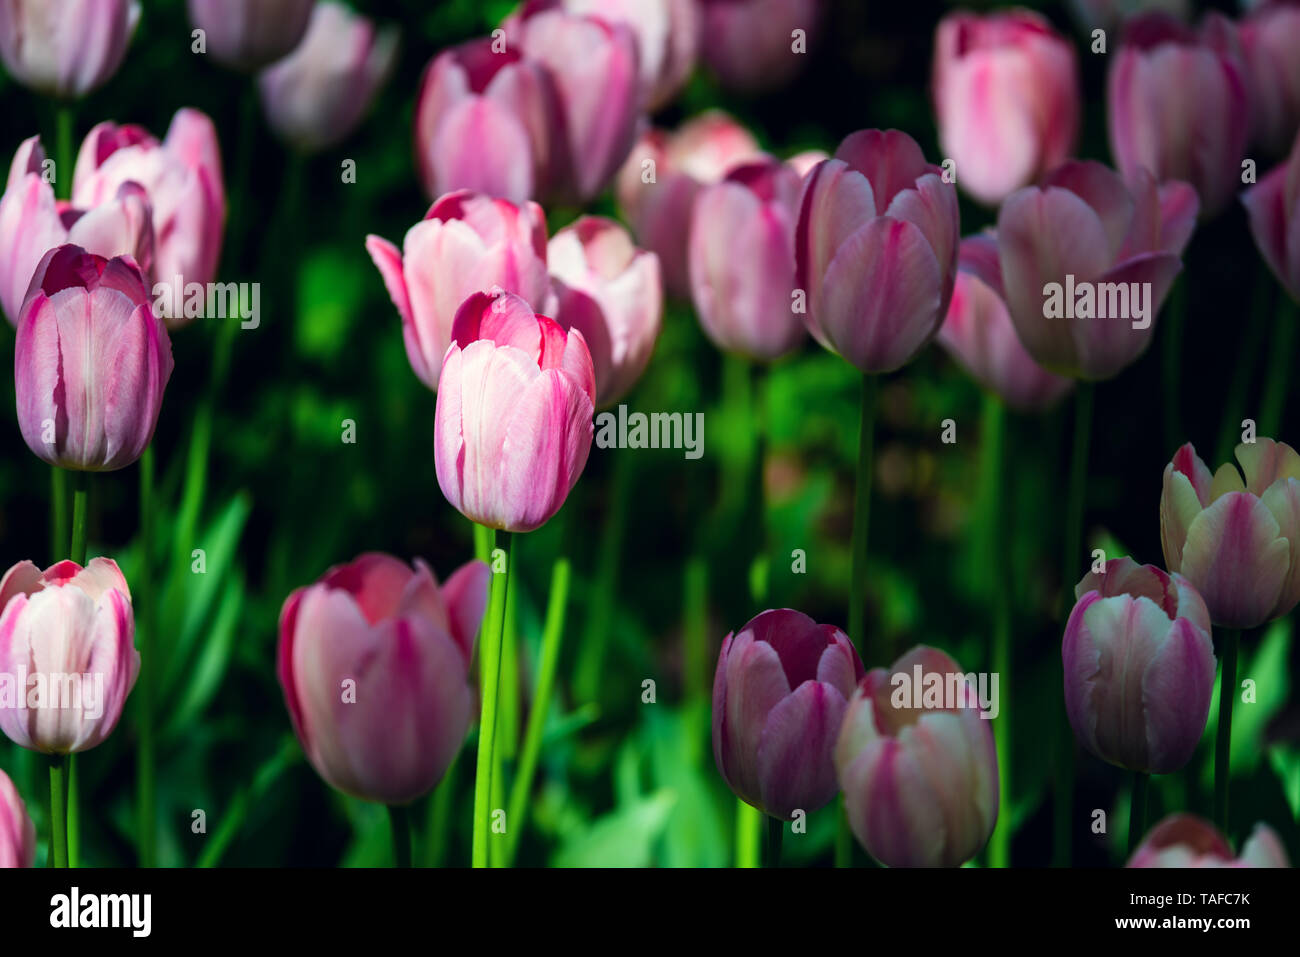 Beautiful and colorful tulips on the sunny field. Large close-up photography from Tulip Festival. Stock Photo